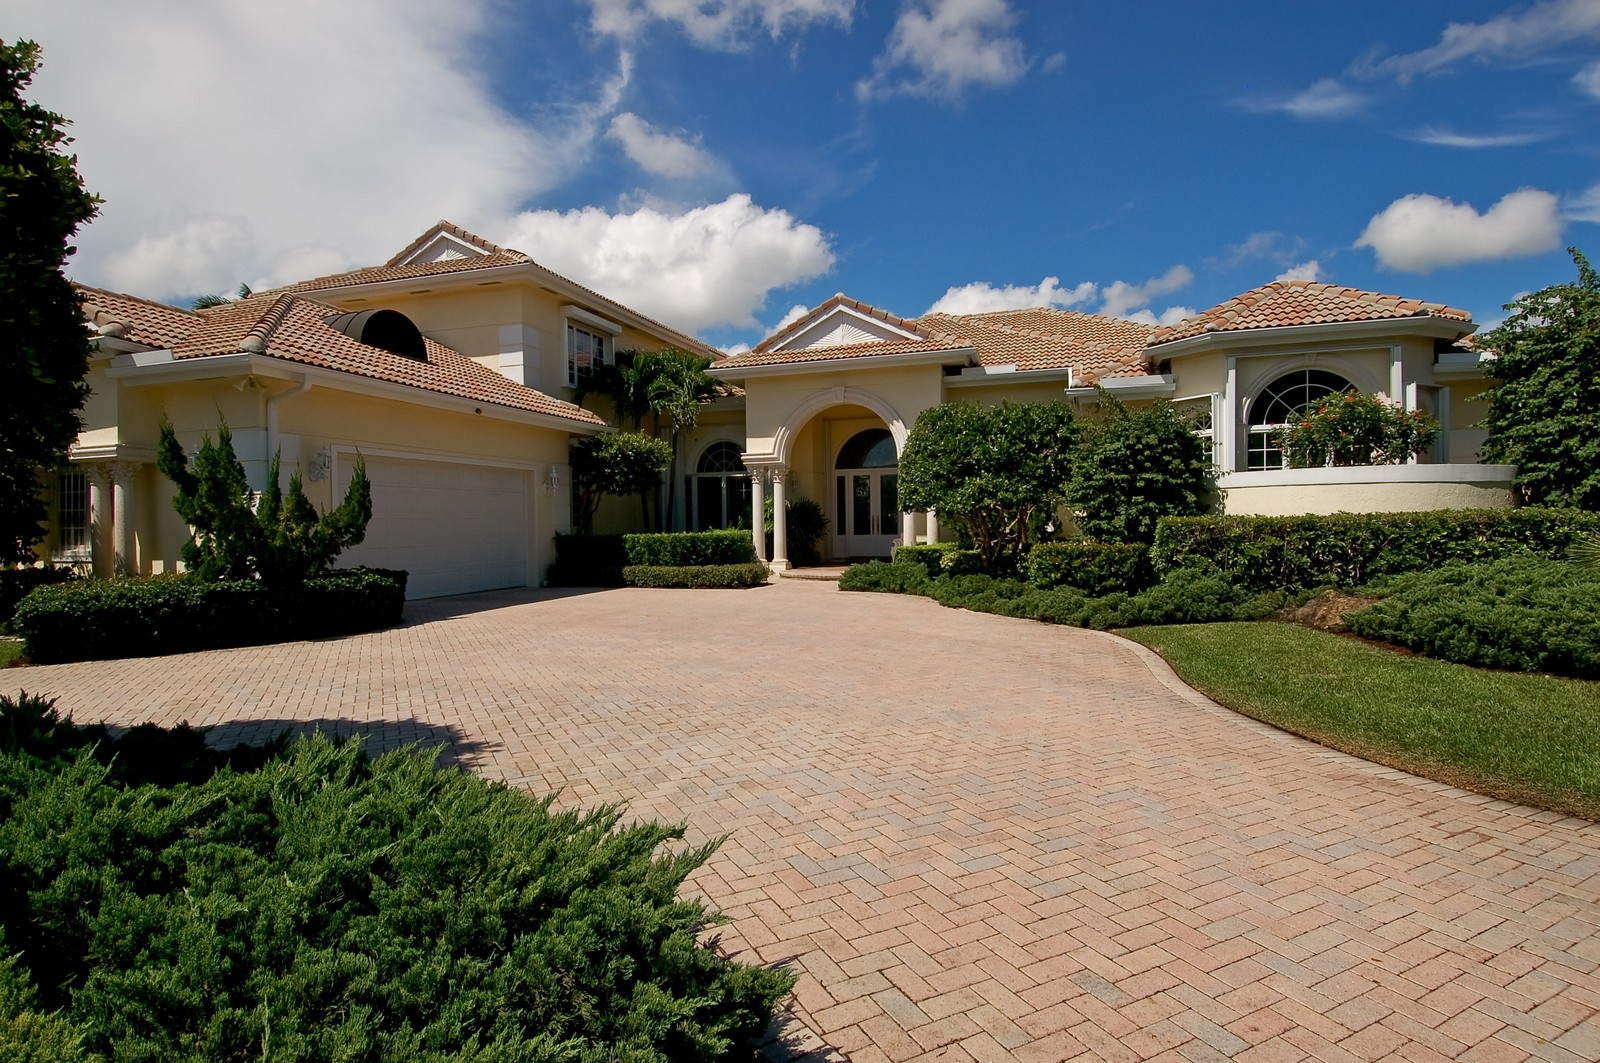 Real Estate Photography - 4252 Bocaire Blvd, Boca Raton, FL, 33487 - Front View